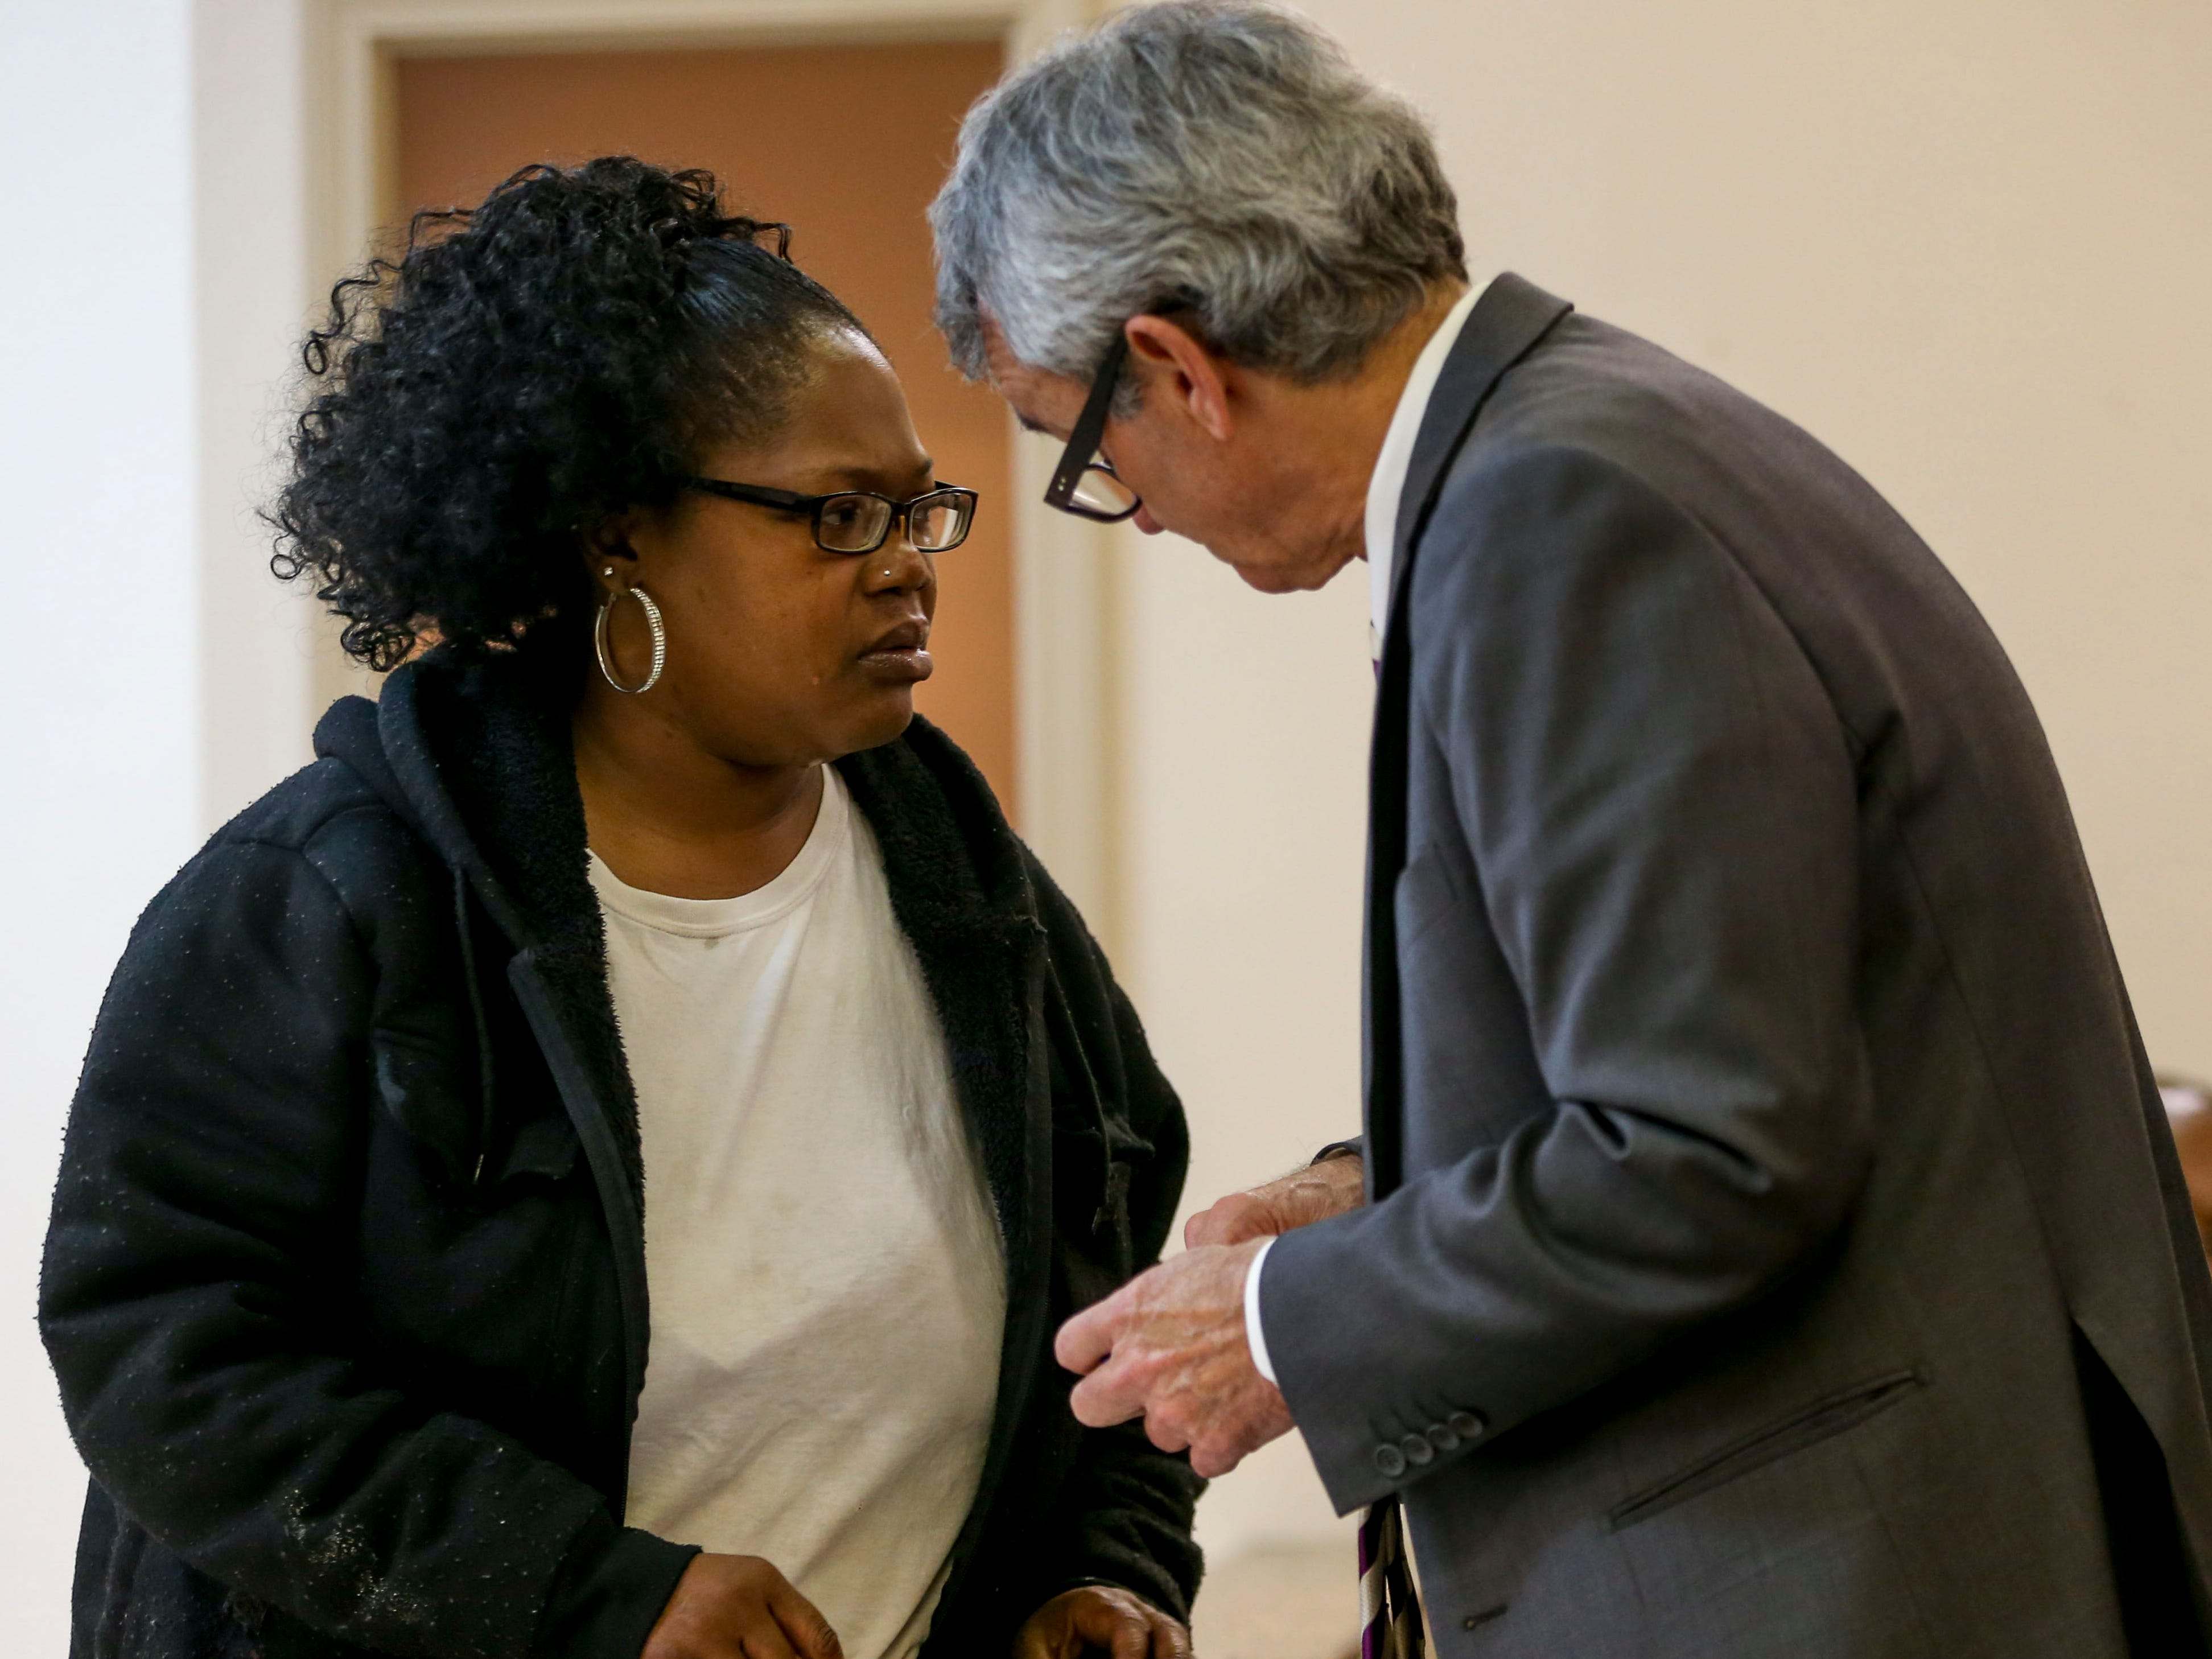 Alicia Hassell speaks with assistant district attorney mike Mosier at a court appearance for Keon Stewart at Jackson City Court in Jackson, Tenn., on Thursday, Nov. 15, 2018.